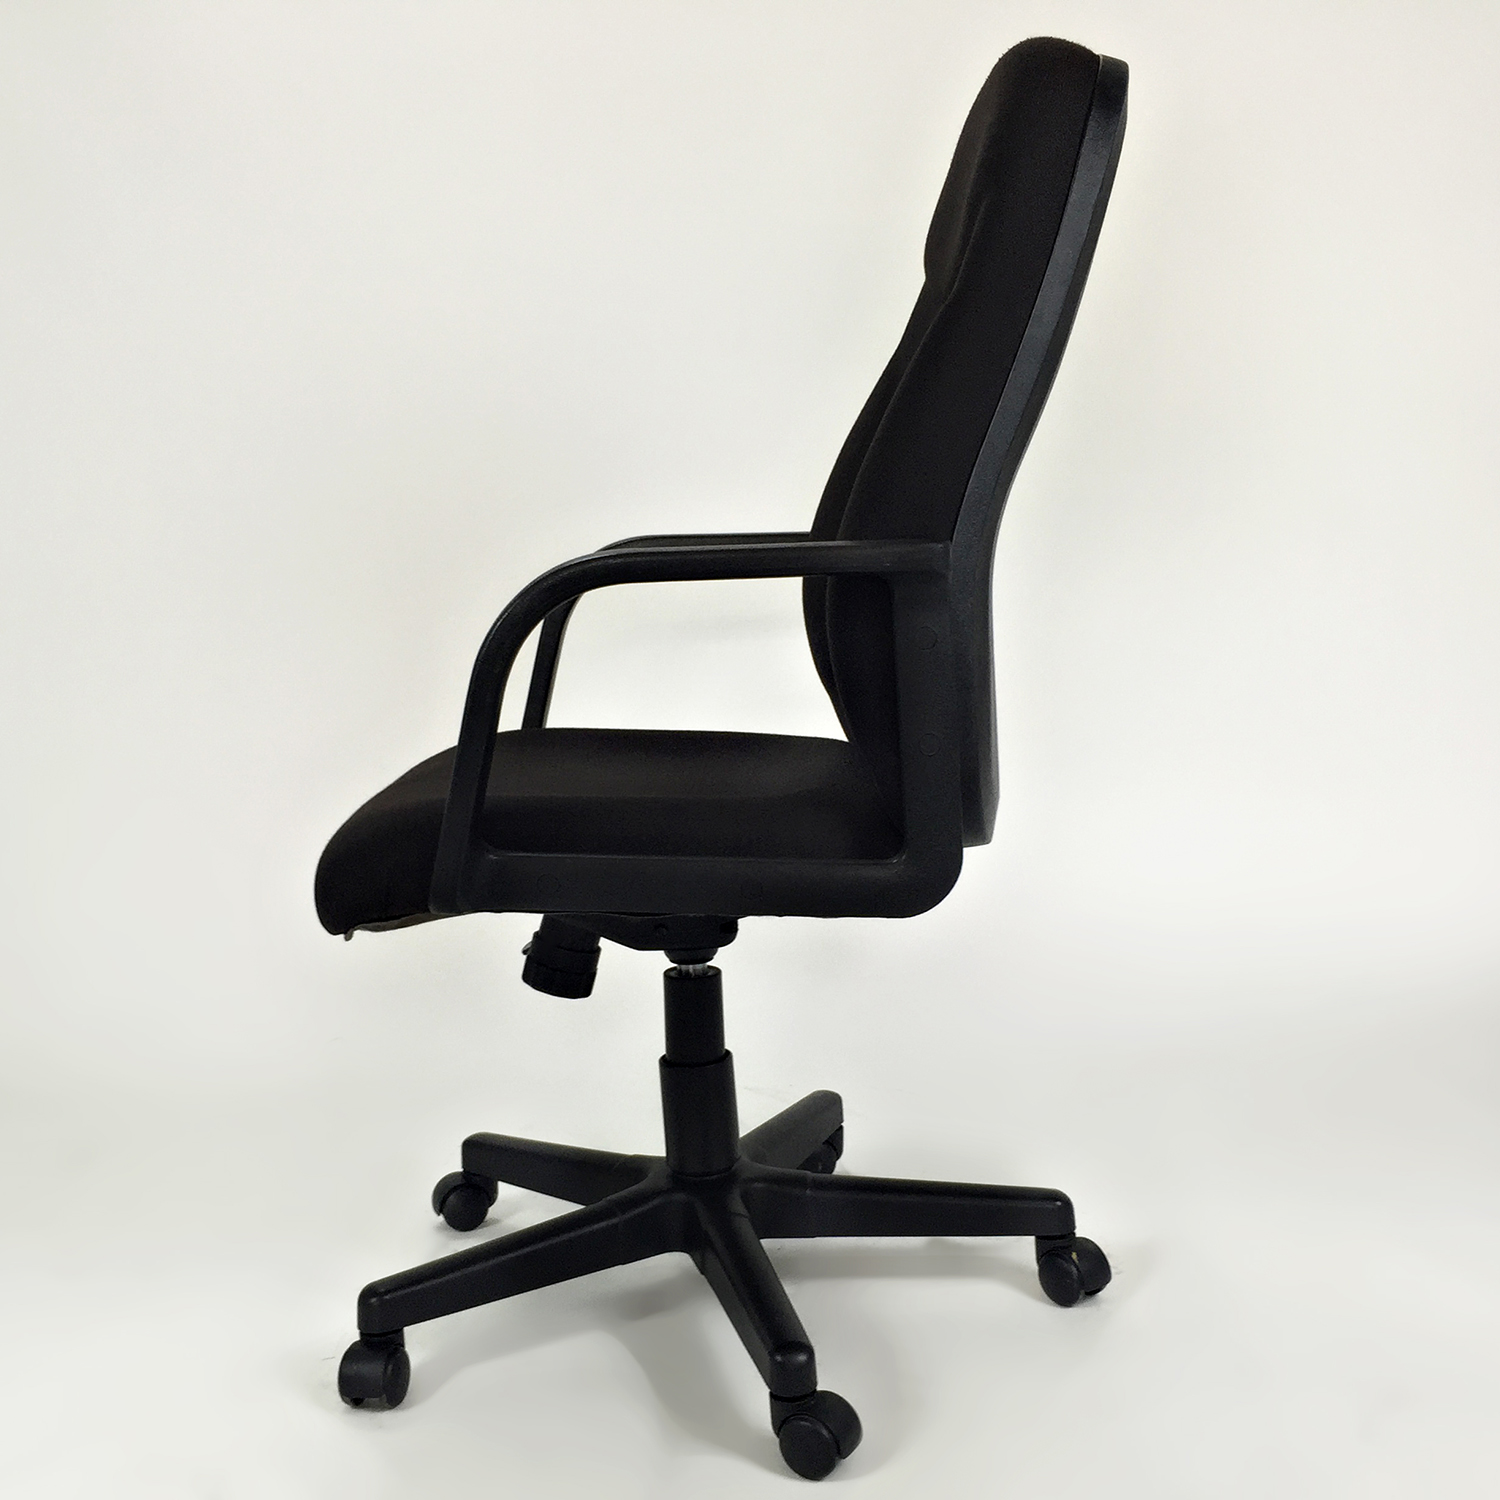 Black Office Chairs 78 Off Unknown Brand Black Office Chair Chairs